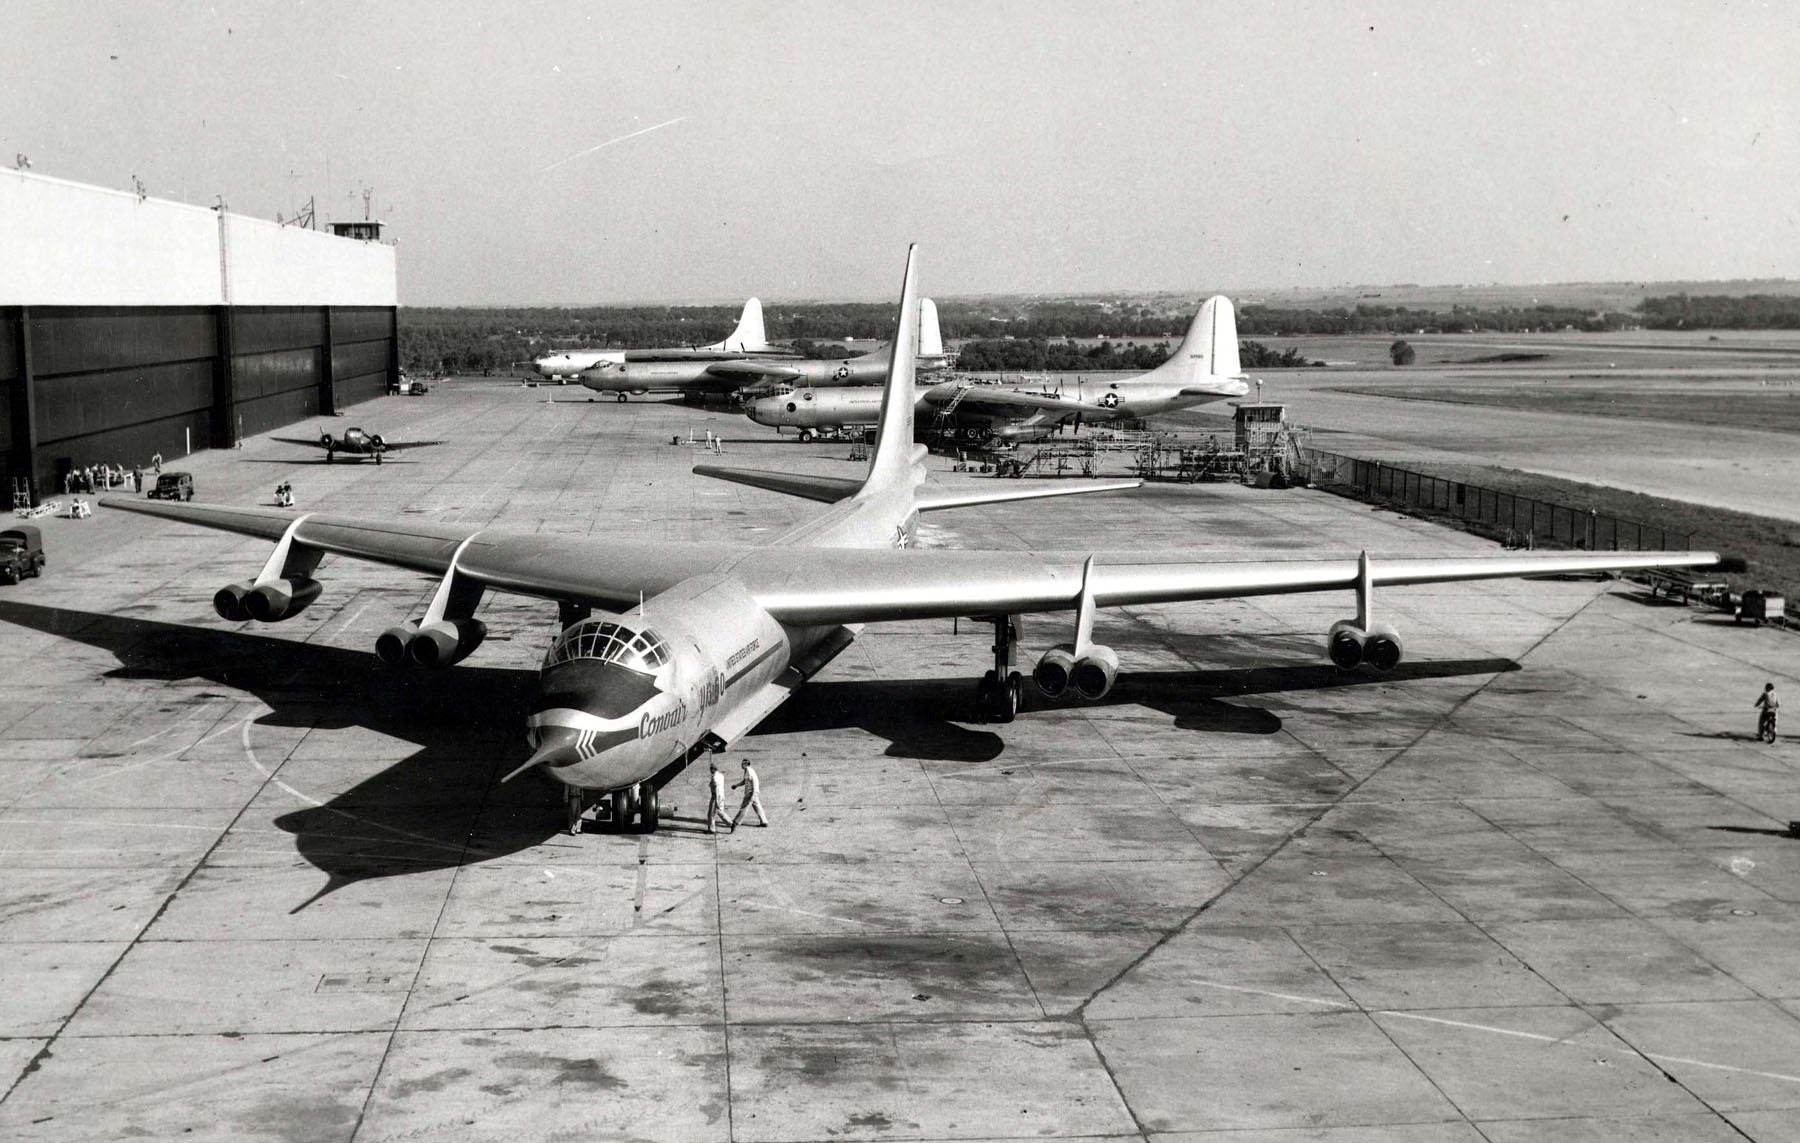 Convair YB-60 front view. Note the three B-36s in the background. (U.S. Air Force photo)